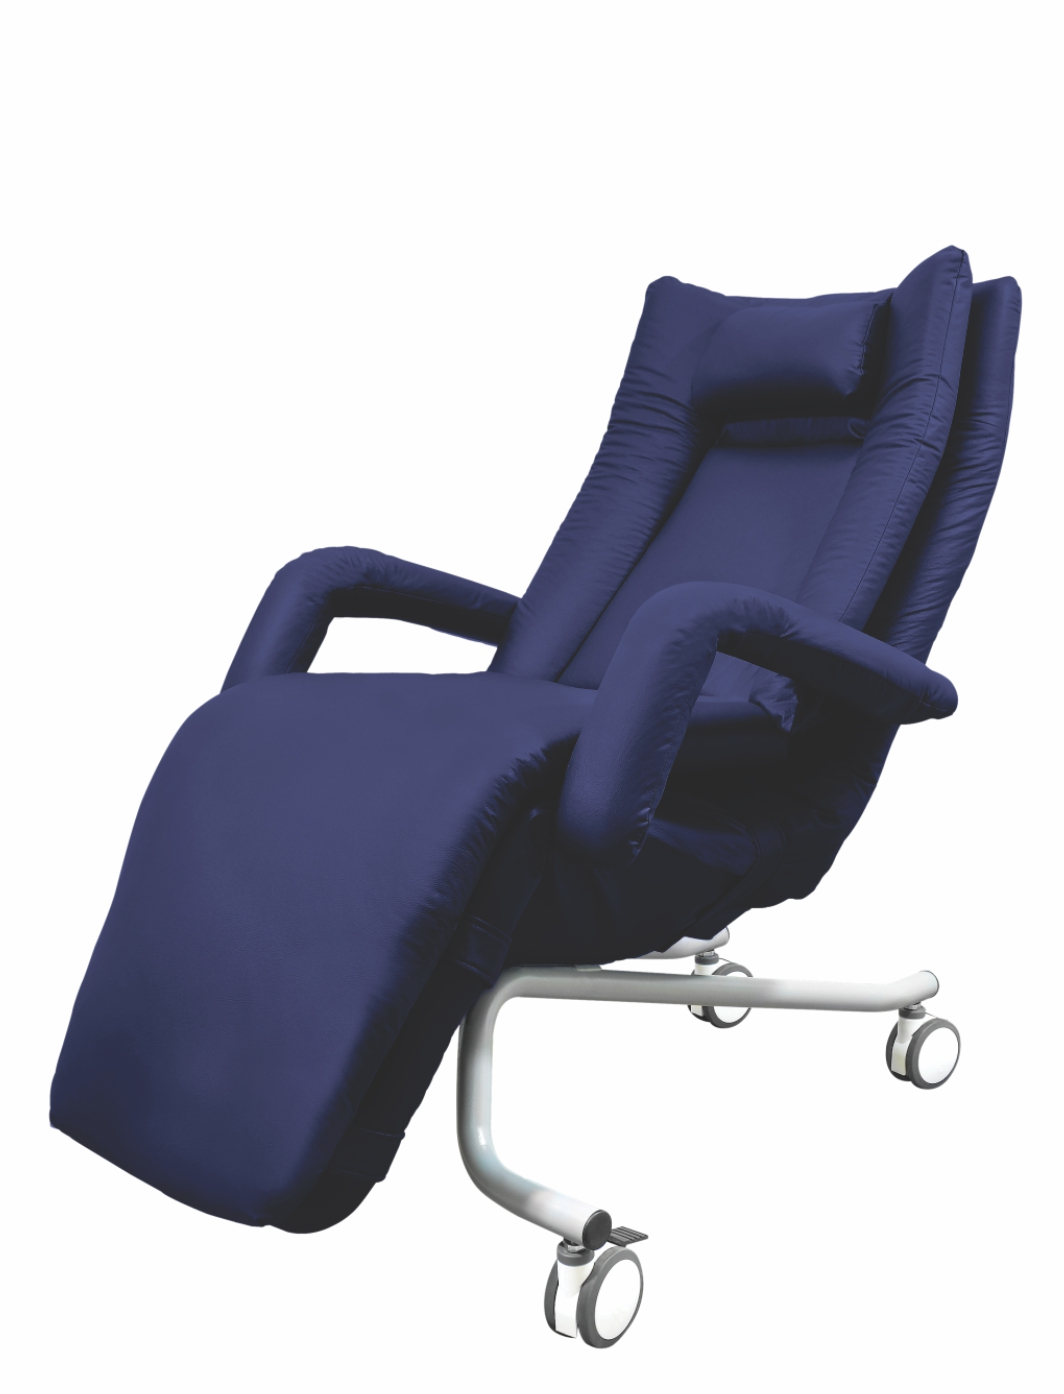 Dialysis Chair<br> up to 120 kg